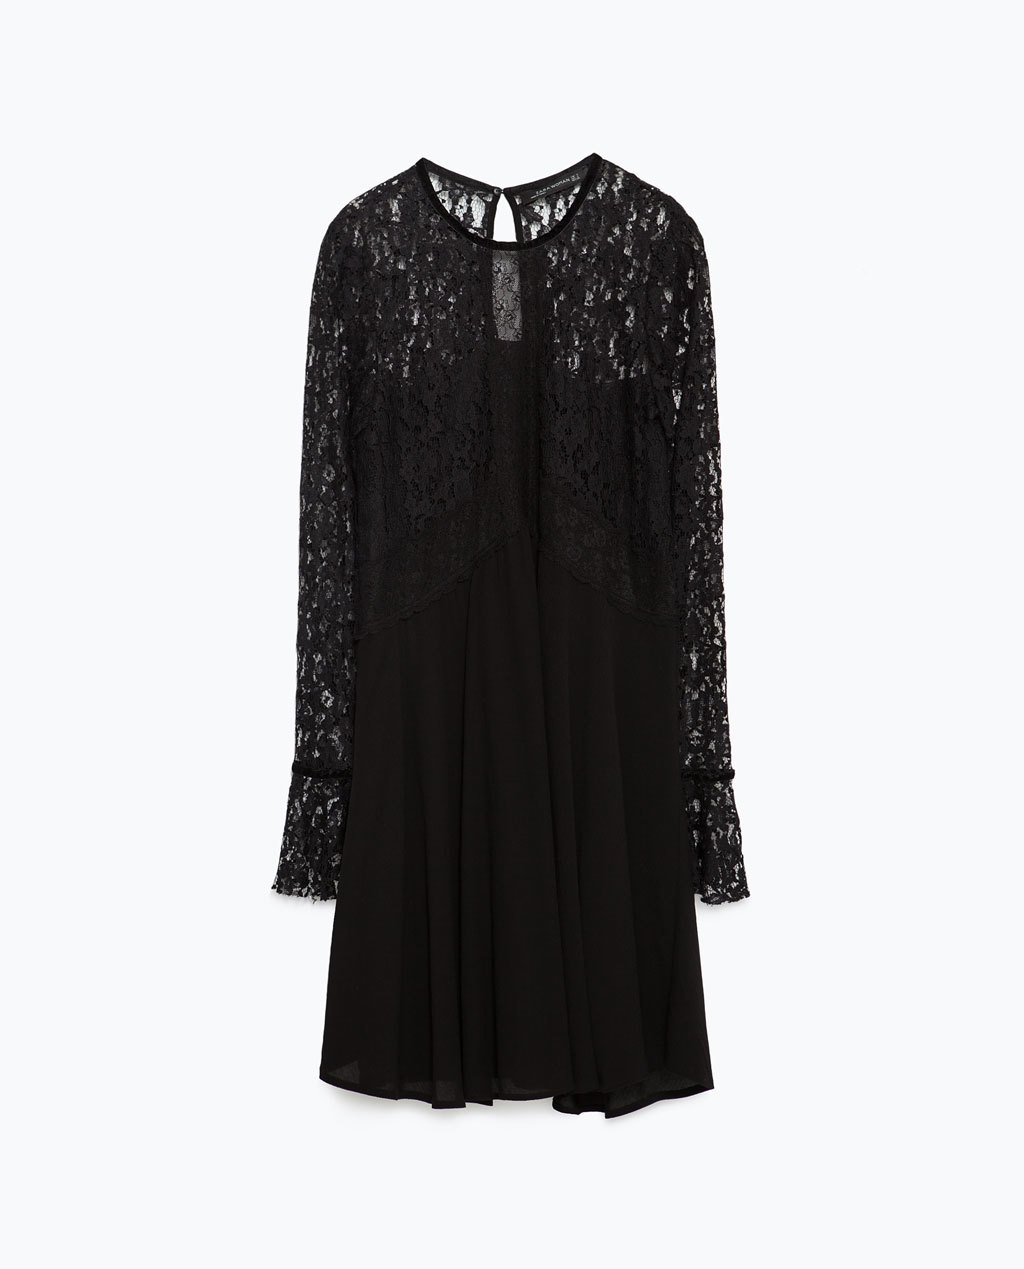 Lace Skater Dress - style: shift; length: mid thigh; predominant colour: black; occasions: evening; fit: soft a-line; fibres: polyester/polyamide - 100%; neckline: crew; hip detail: subtle/flattering hip detail; back detail: keyhole/peephole detail at back; sleeve length: long sleeve; sleeve style: standard; texture group: lace; pattern type: fabric; pattern size: standard; pattern: patterned/print; shoulder detail: sheer at shoulder; season: a/w 2015; trends: romantic goth; wardrobe: event